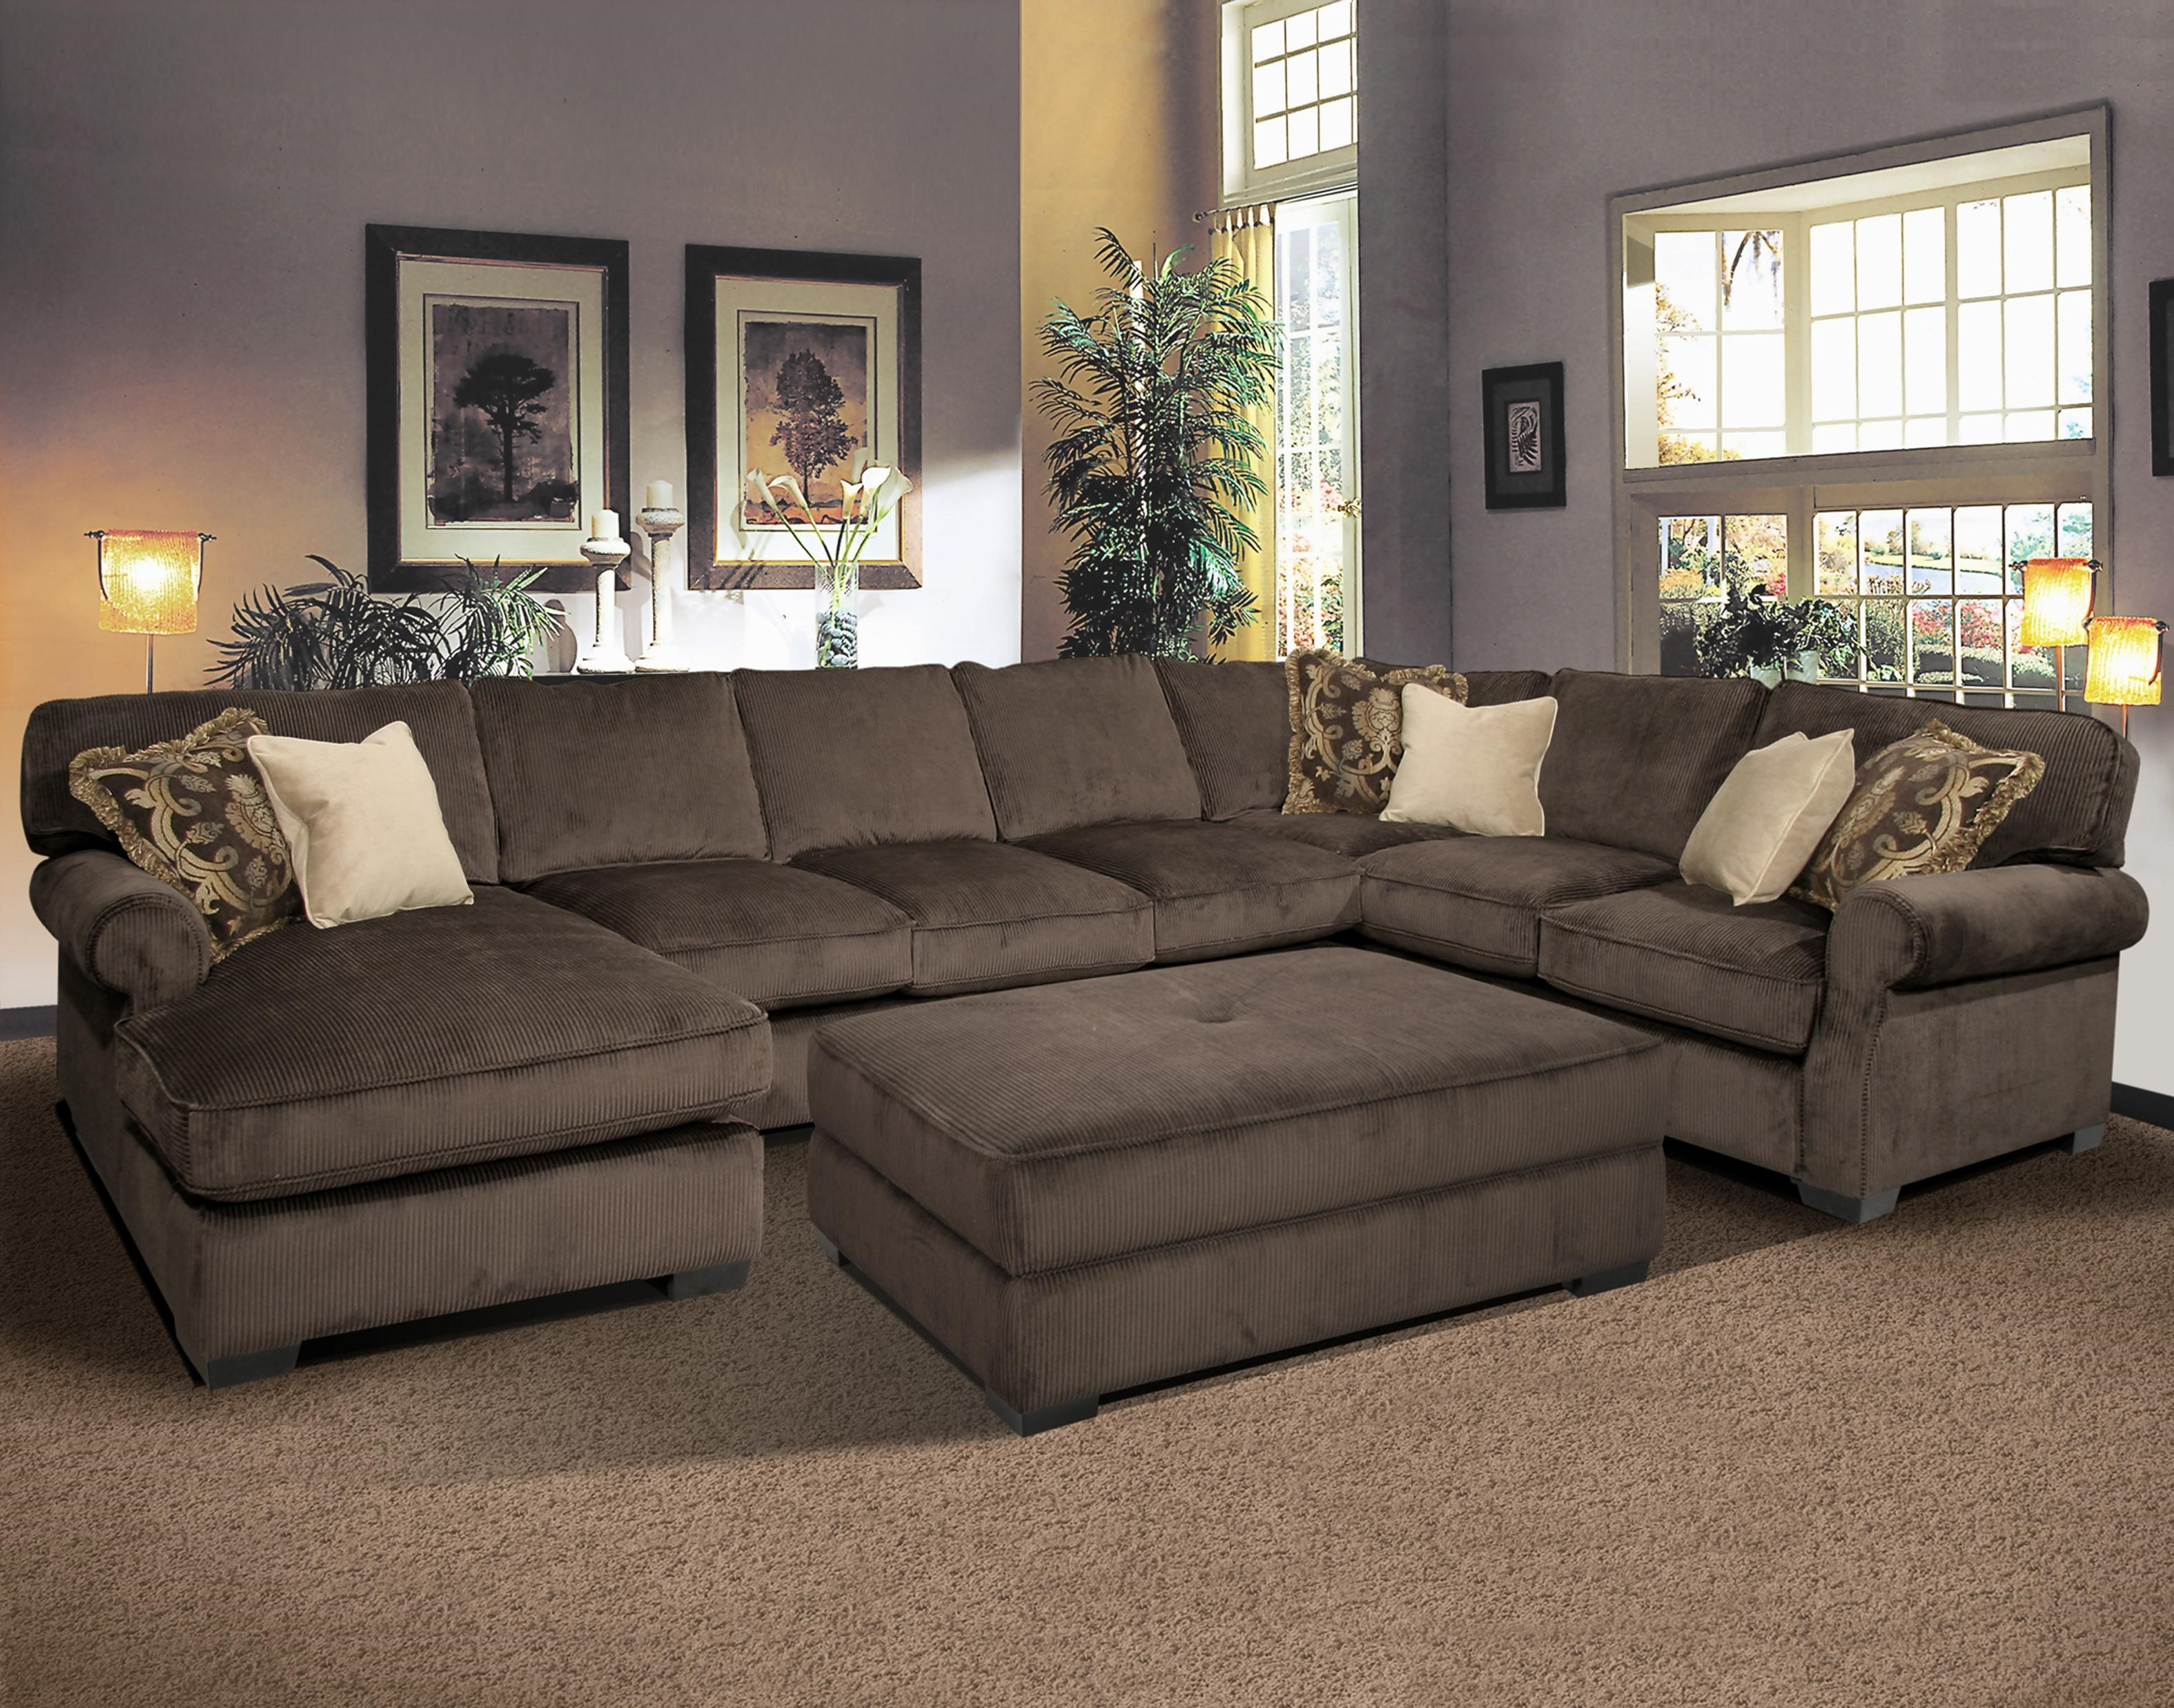 Modular Sectional Sofas Sofa For Small Spaces On Sale Uk Stock Within Sectional Sofas At Calgary (View 5 of 10)